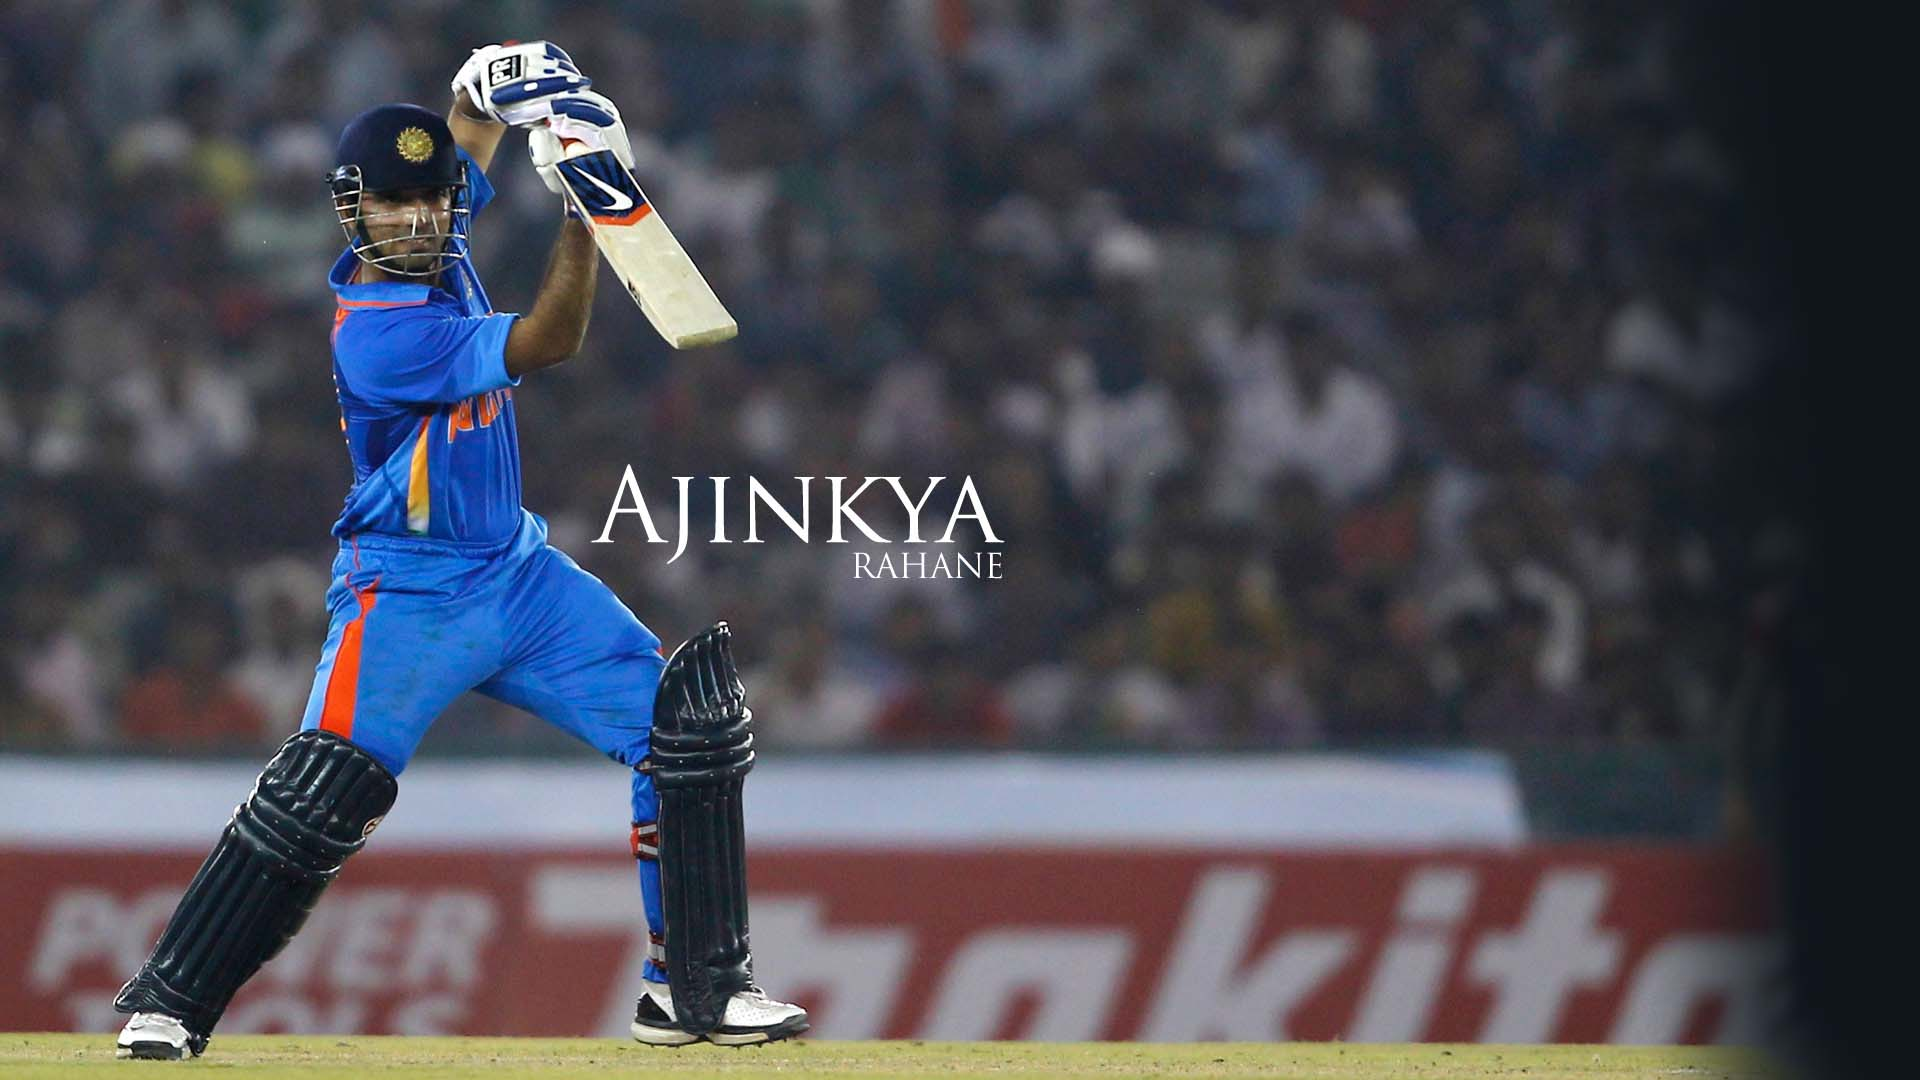 Ajinkya-Rahane-indian-cricketer-Indian-cricketer-Cricket-bat-ball-ravindra-jadeja-wallpaper-wpc5802005